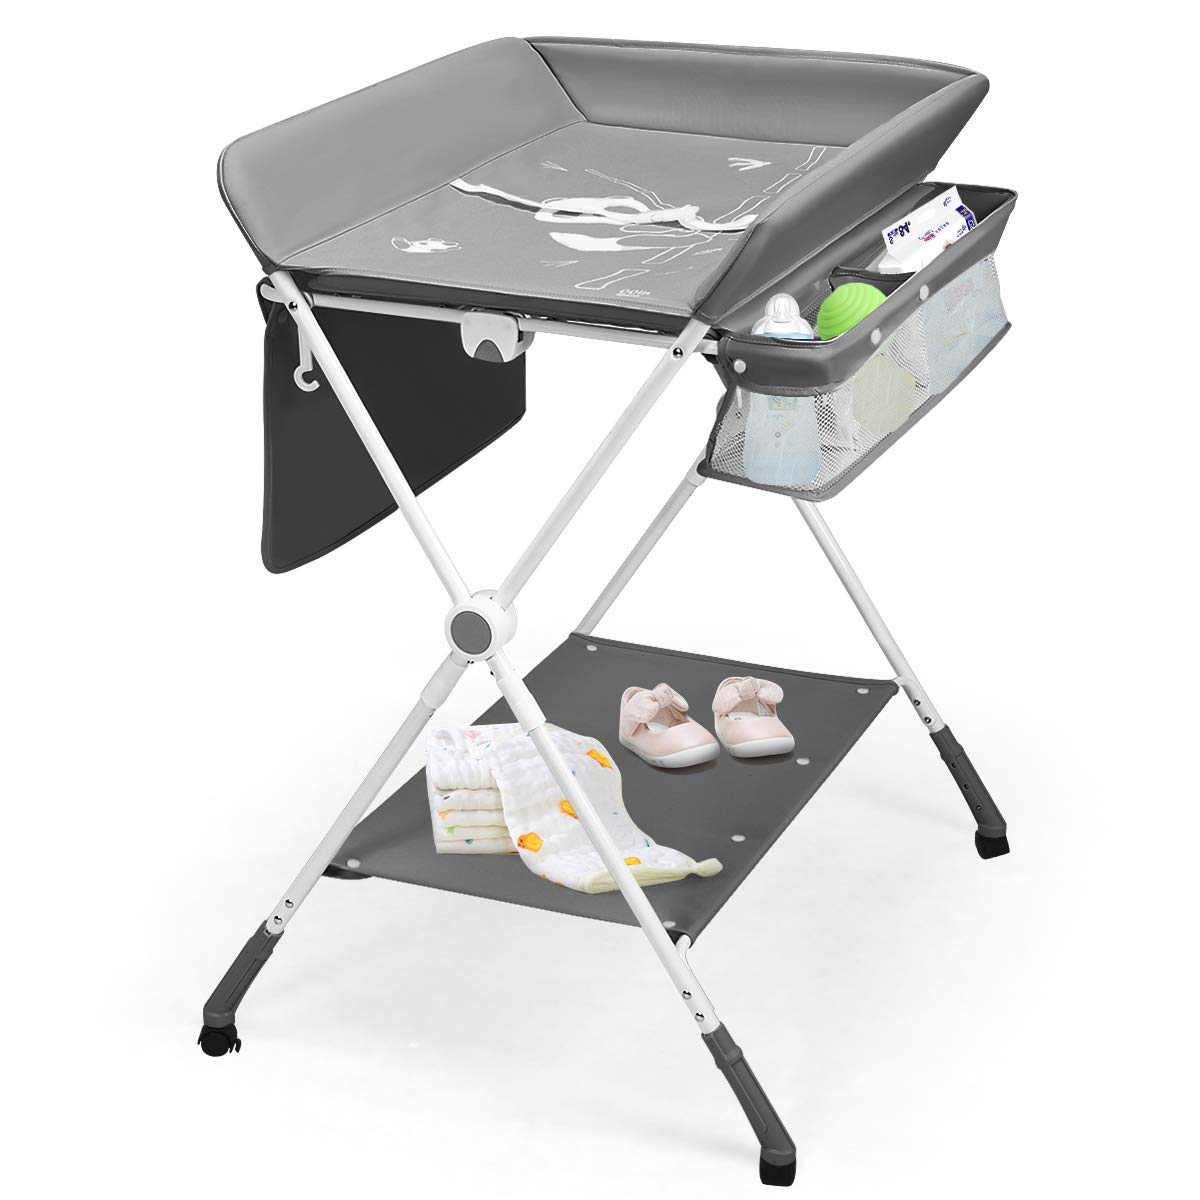 BABY JOY Baby Changing Table